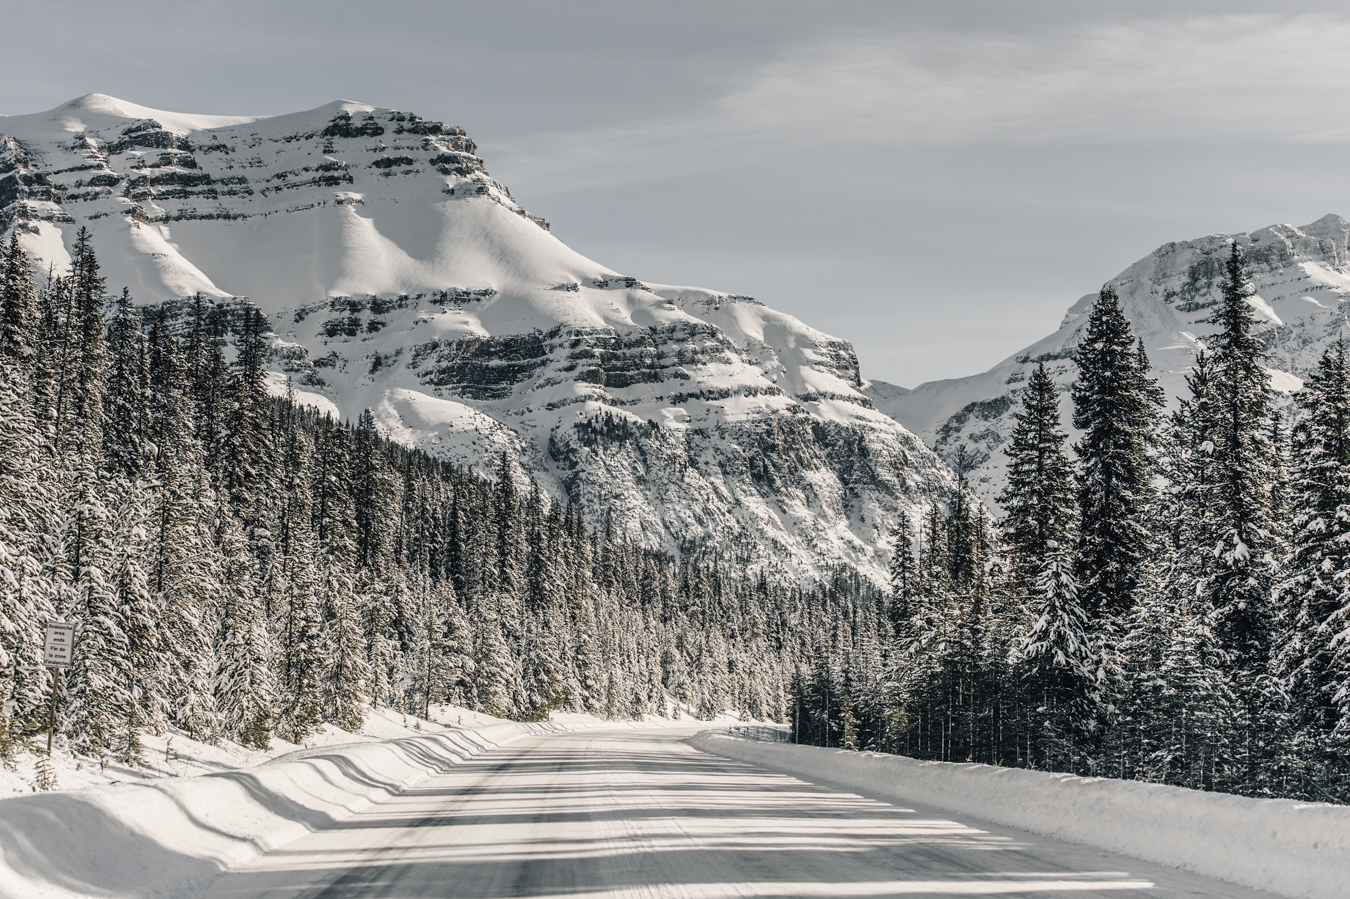 icefields-parkway-christian-frumolt-fotografie_web_small-158